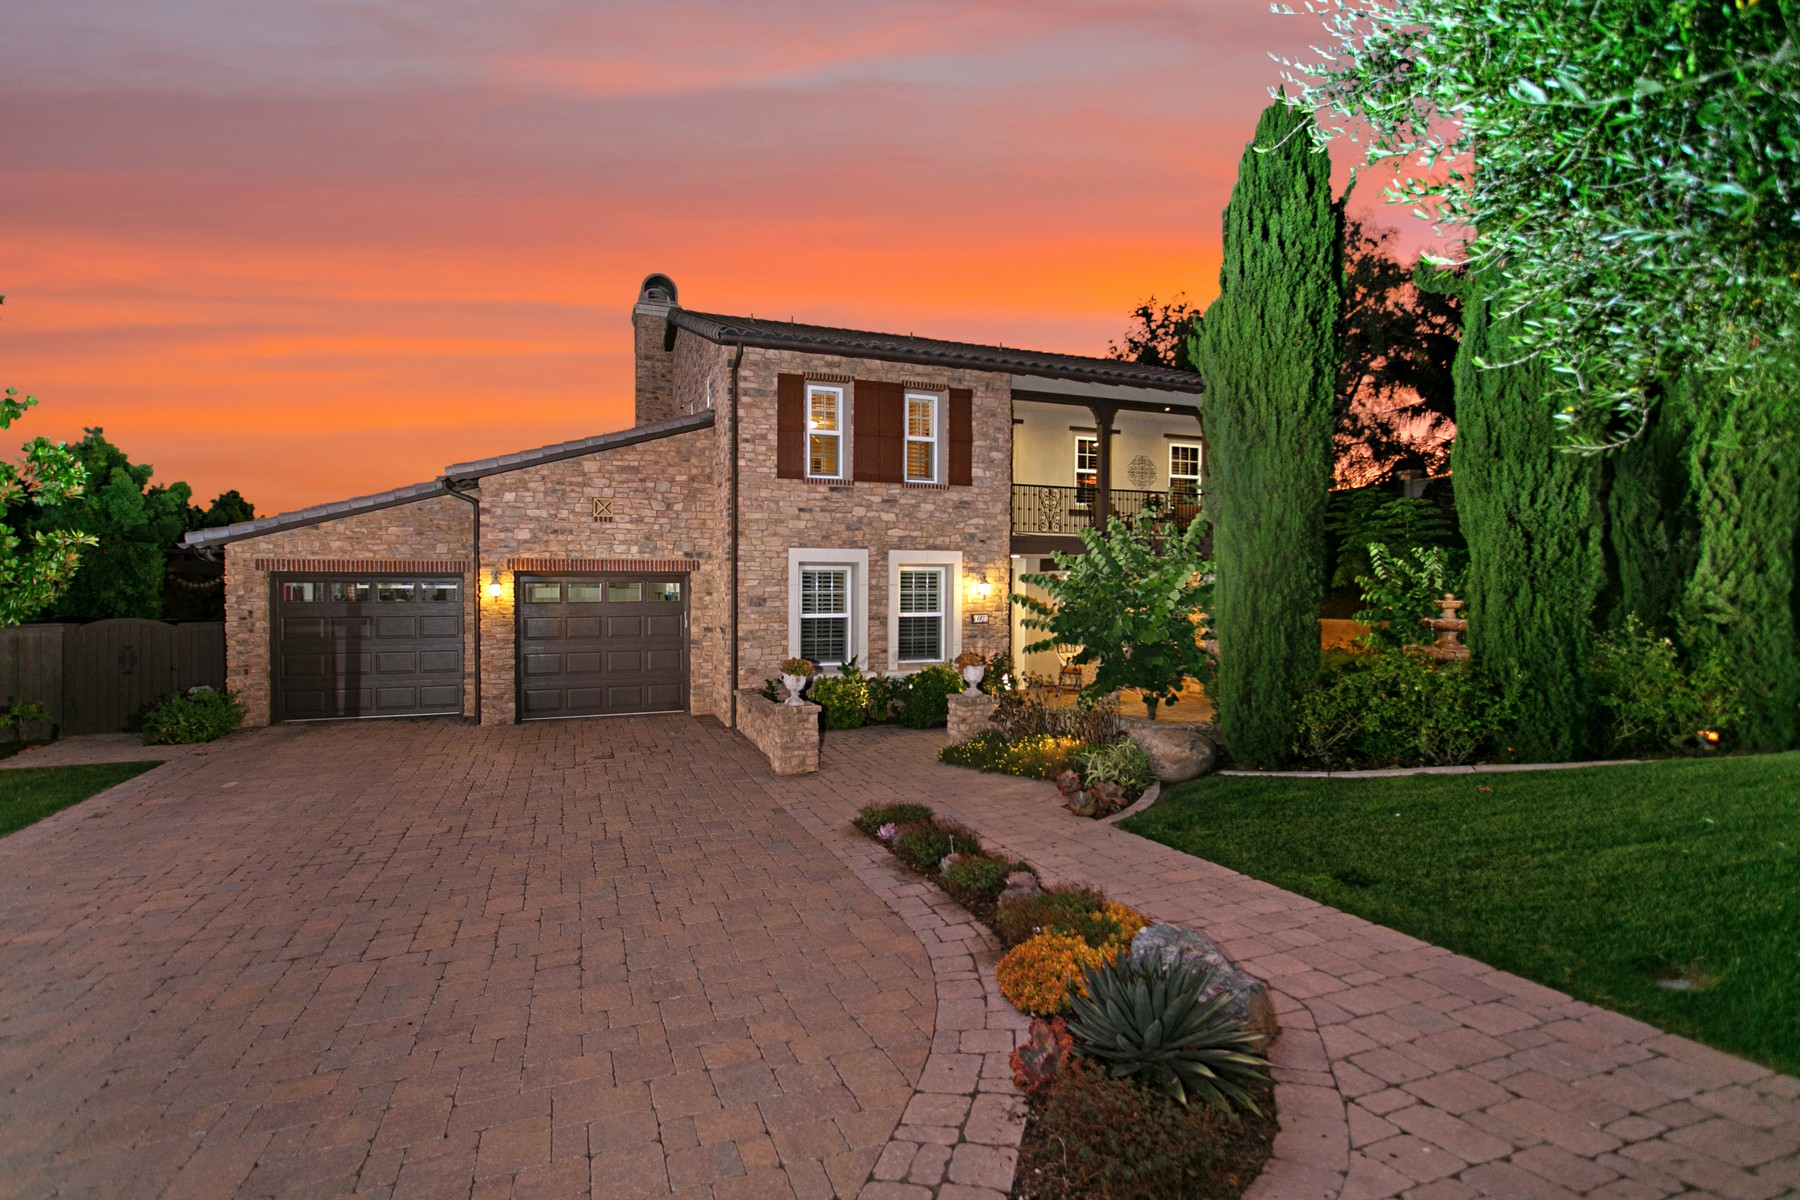 Single Family Homes for Active at 6921 Sitio Cordero Carlsbad, California 92009 United States